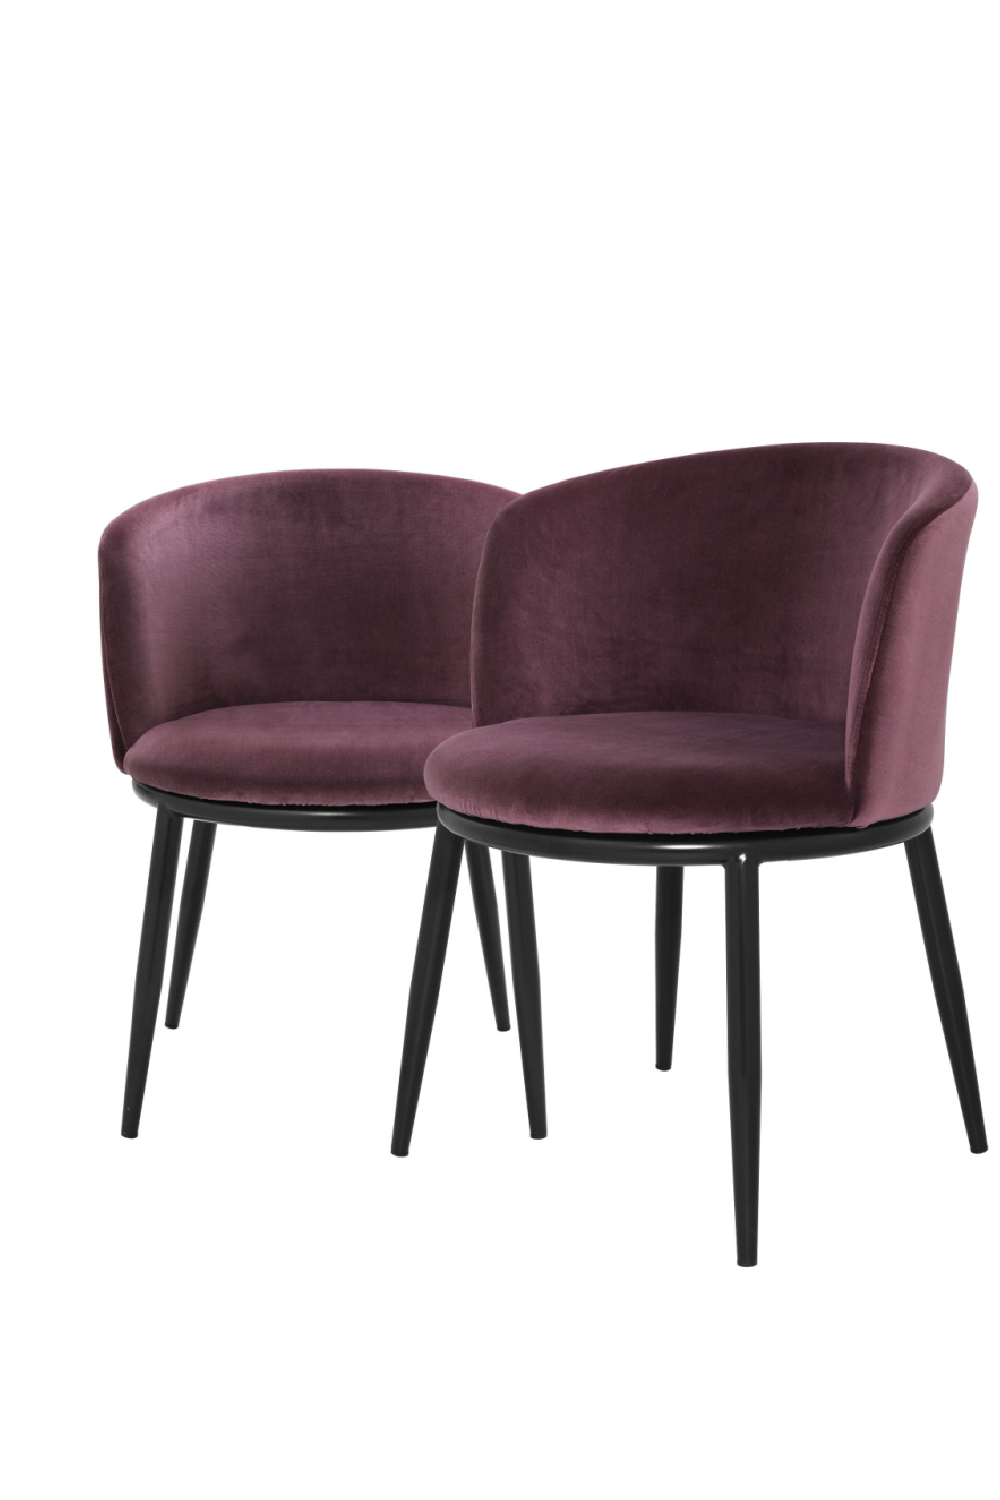 Purple Dining Chair Set Of 2 | Eichholtz Filmore